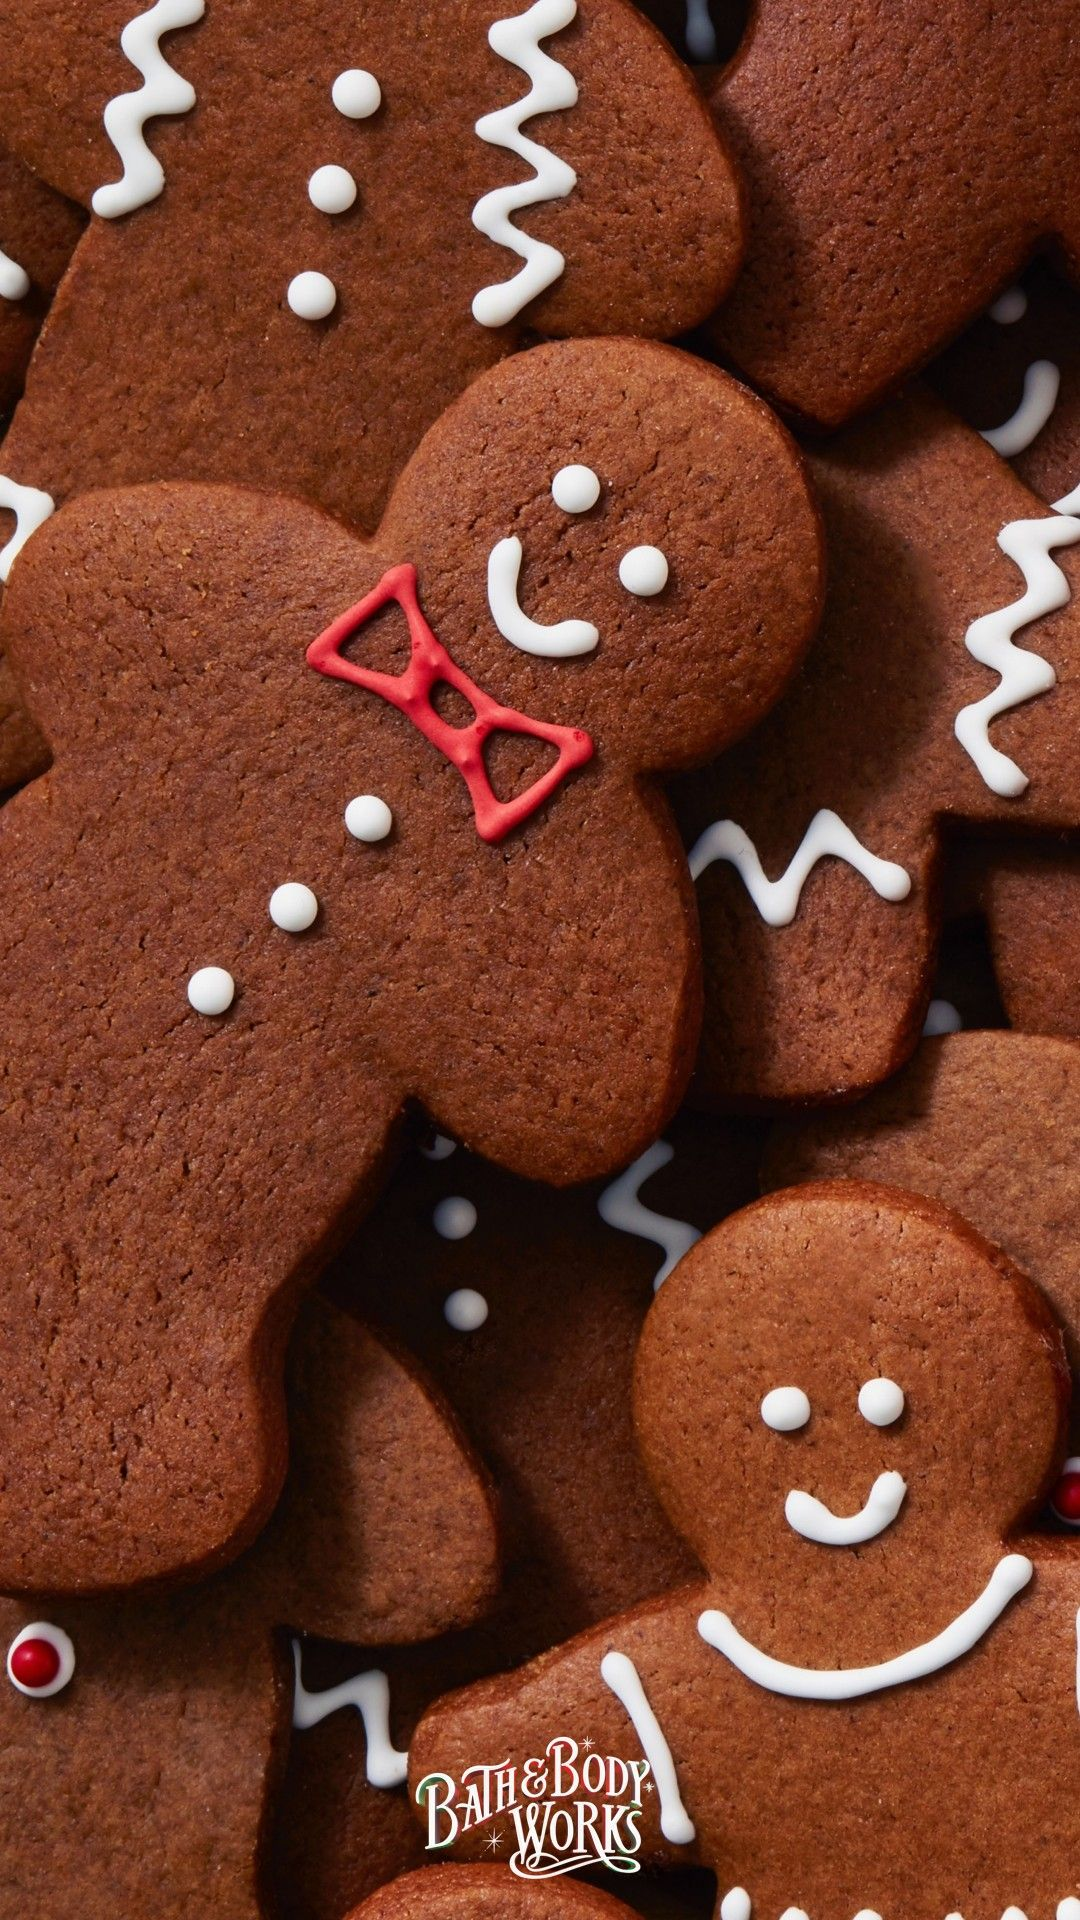 New Gingerbread iPhone Wallpaper #christmasbackgrounds